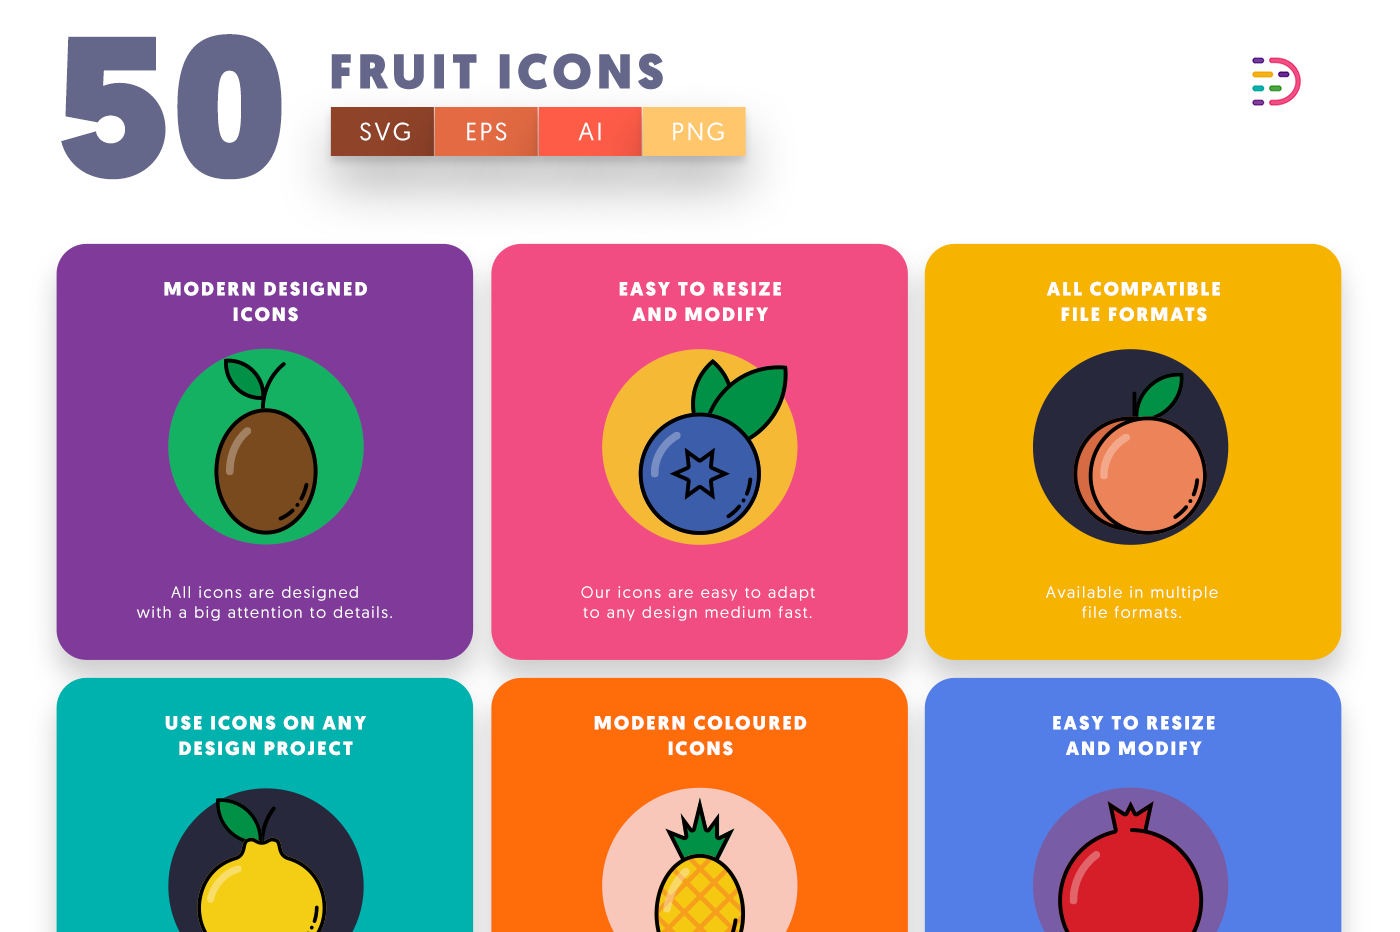 50 Fruit Icons with colored backgrounds